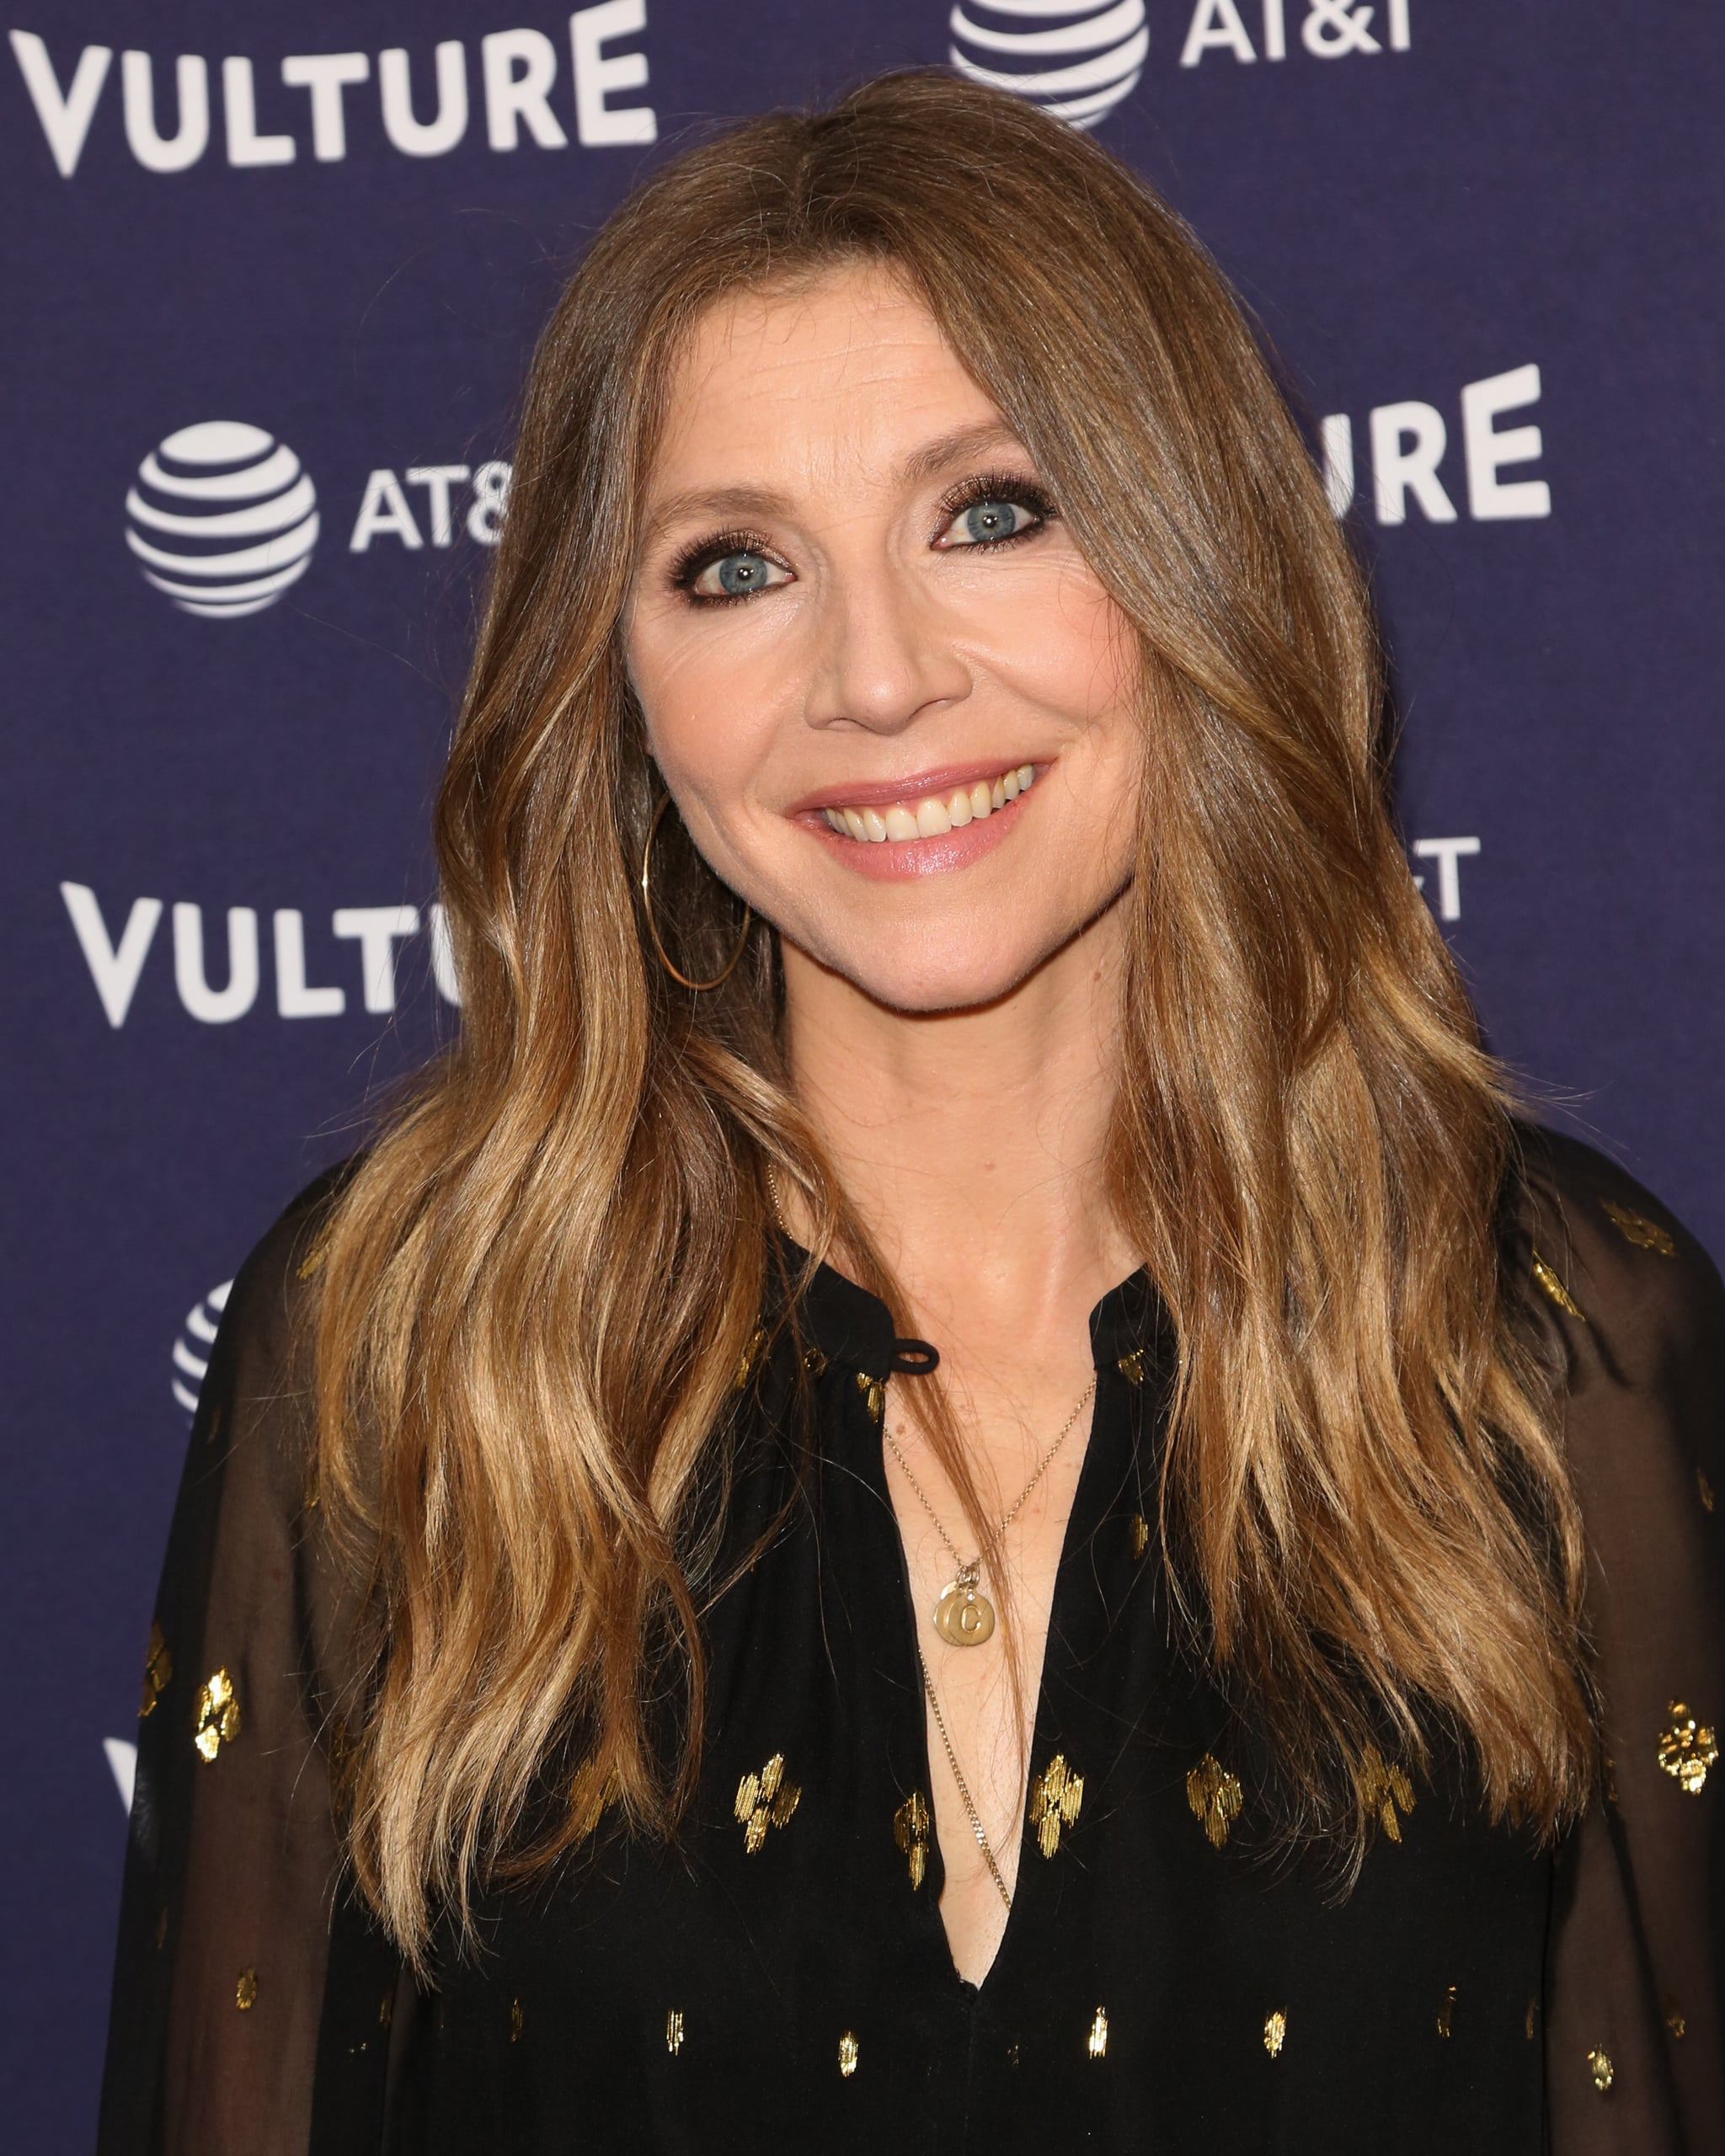 LOS ANGELES, CALIFORNIA - NOVEMBER 17: Actress Sarah Chalke attends the 2018 Vulture Festival Los Angeles at The Hollywood Roosevelt Hotel on November 17, 2018 in Los Angeles, California. (Photo by Paul Archuleta/Getty Images)